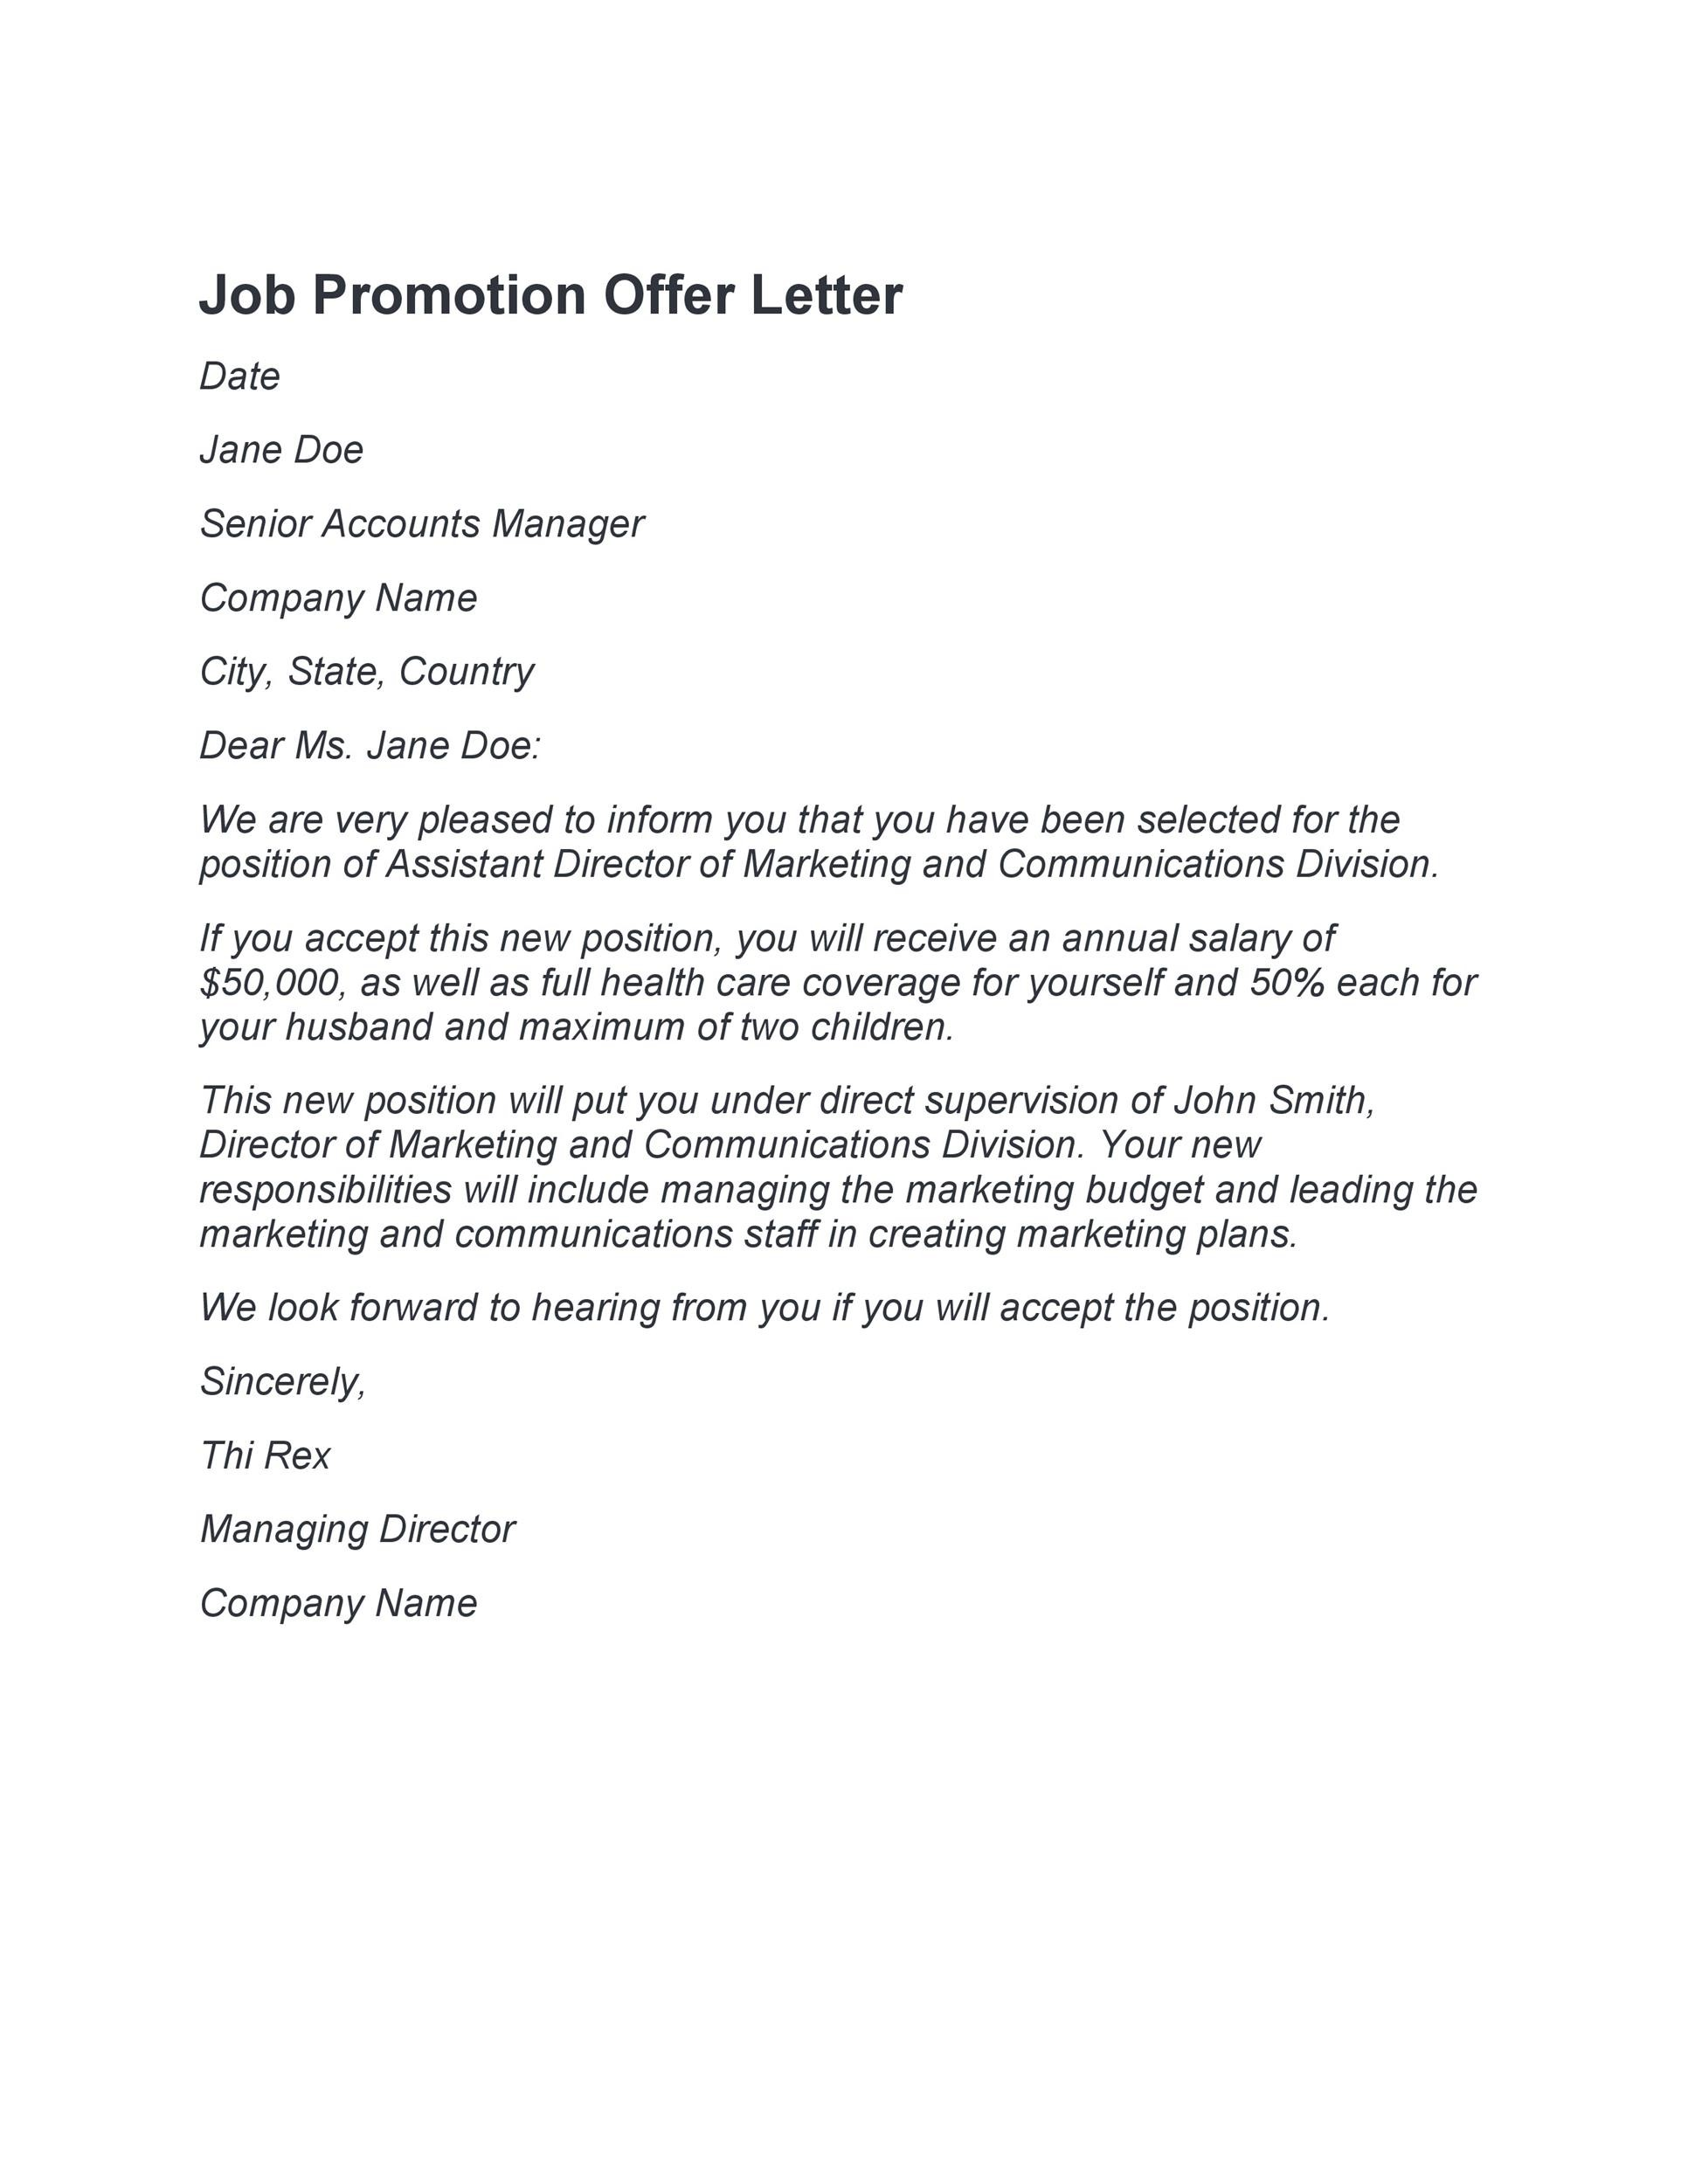 50 Job Promotion Letters (100% Free Templates) ᐅ Template Lab